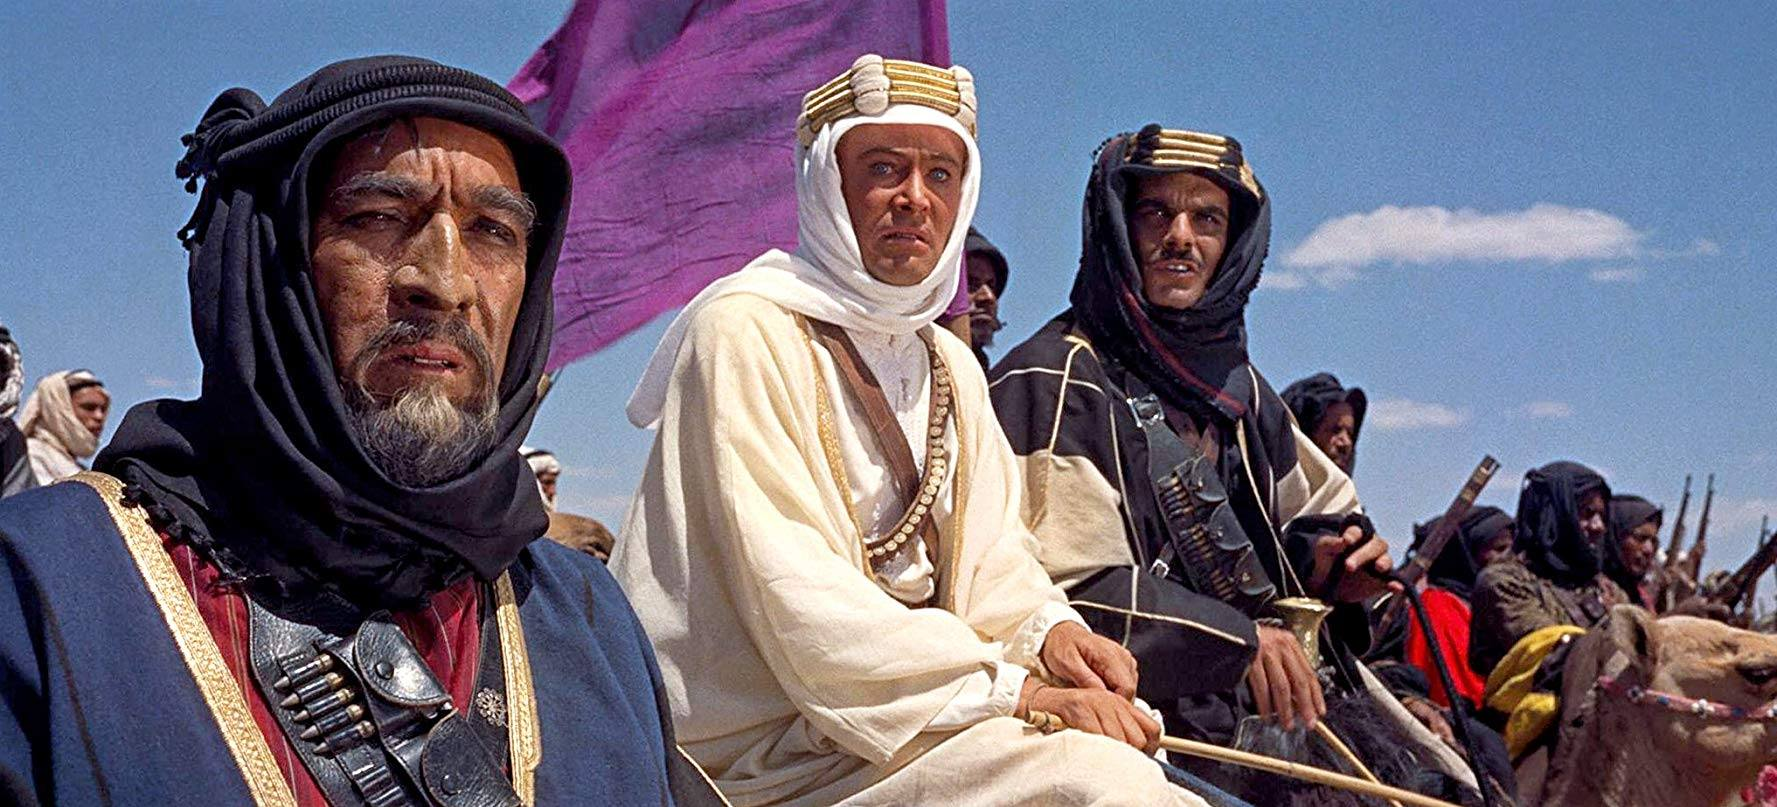 Anthony Quinn, Peter O'Toole, and Omar Sharif in Lawrence of Arabia (1962)